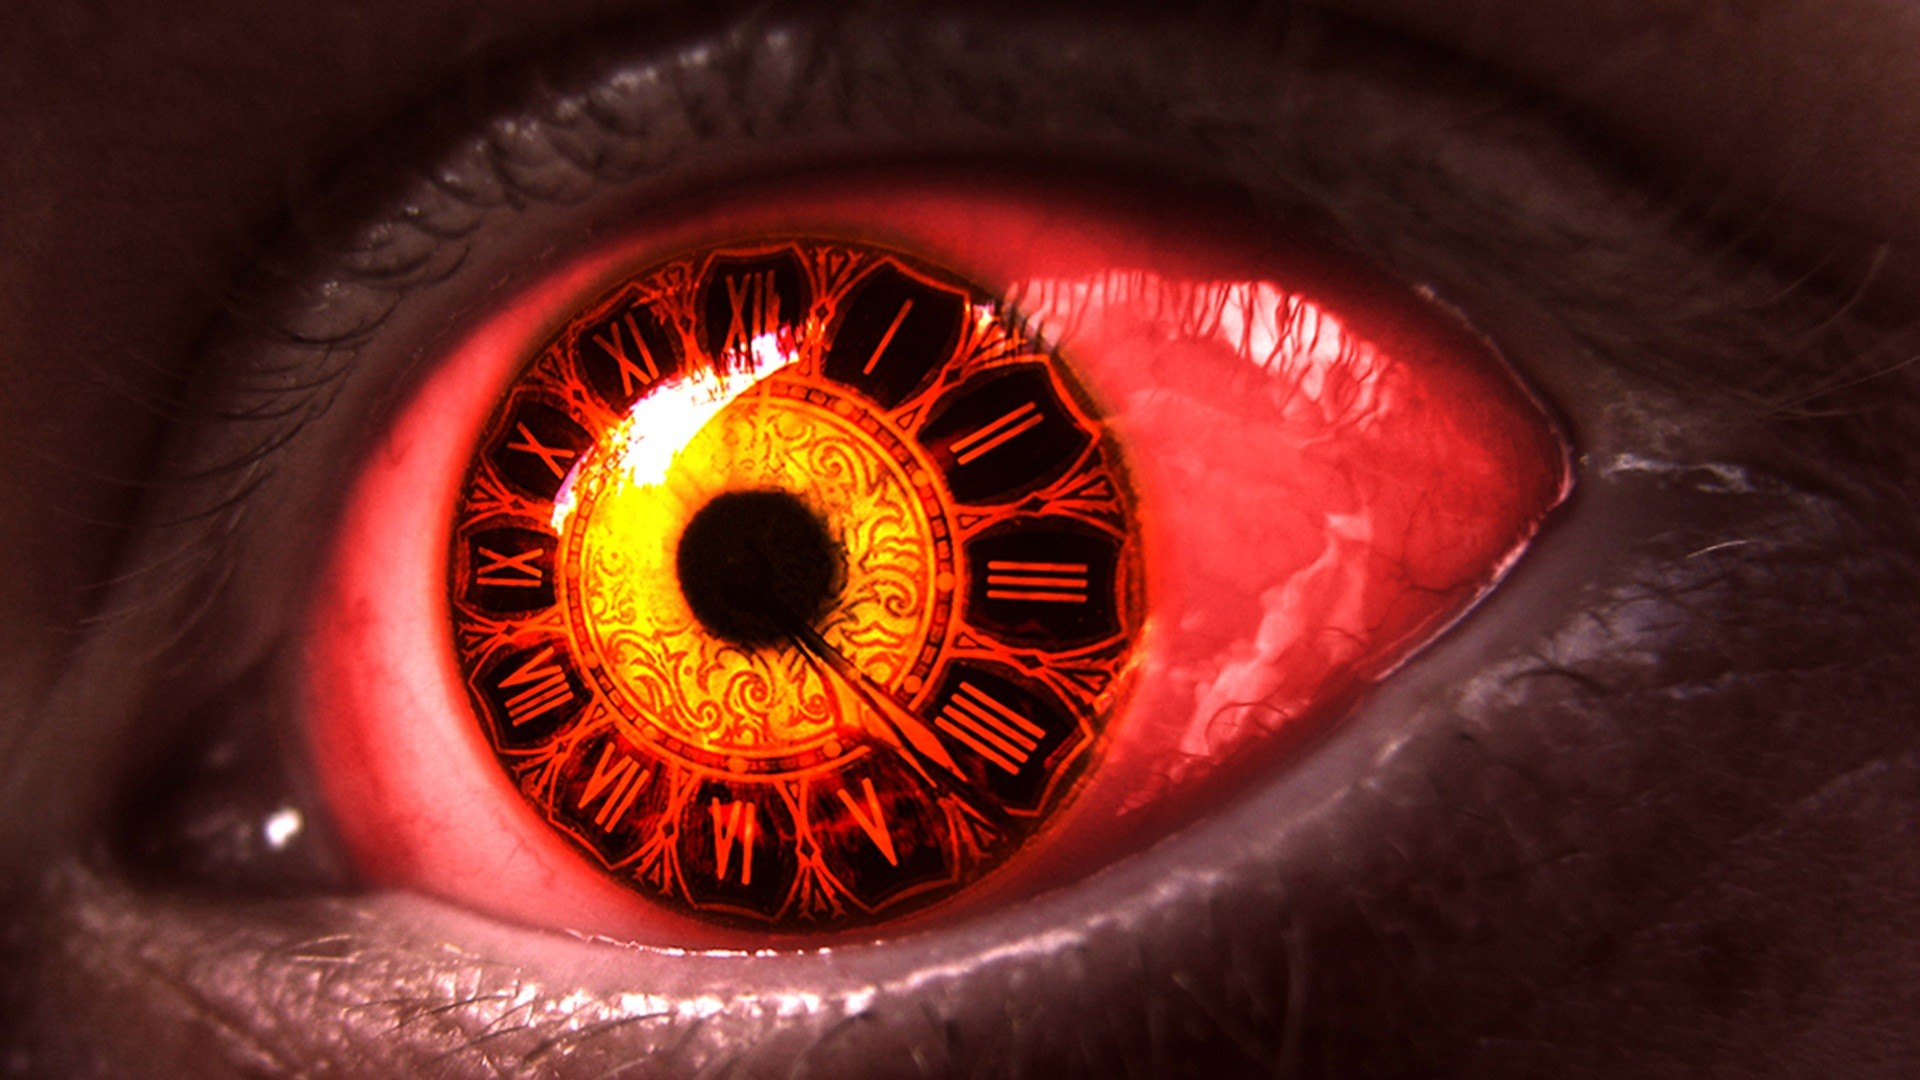 red eye iphone horror wallpaper 183 free amazing wallpapers for 12843